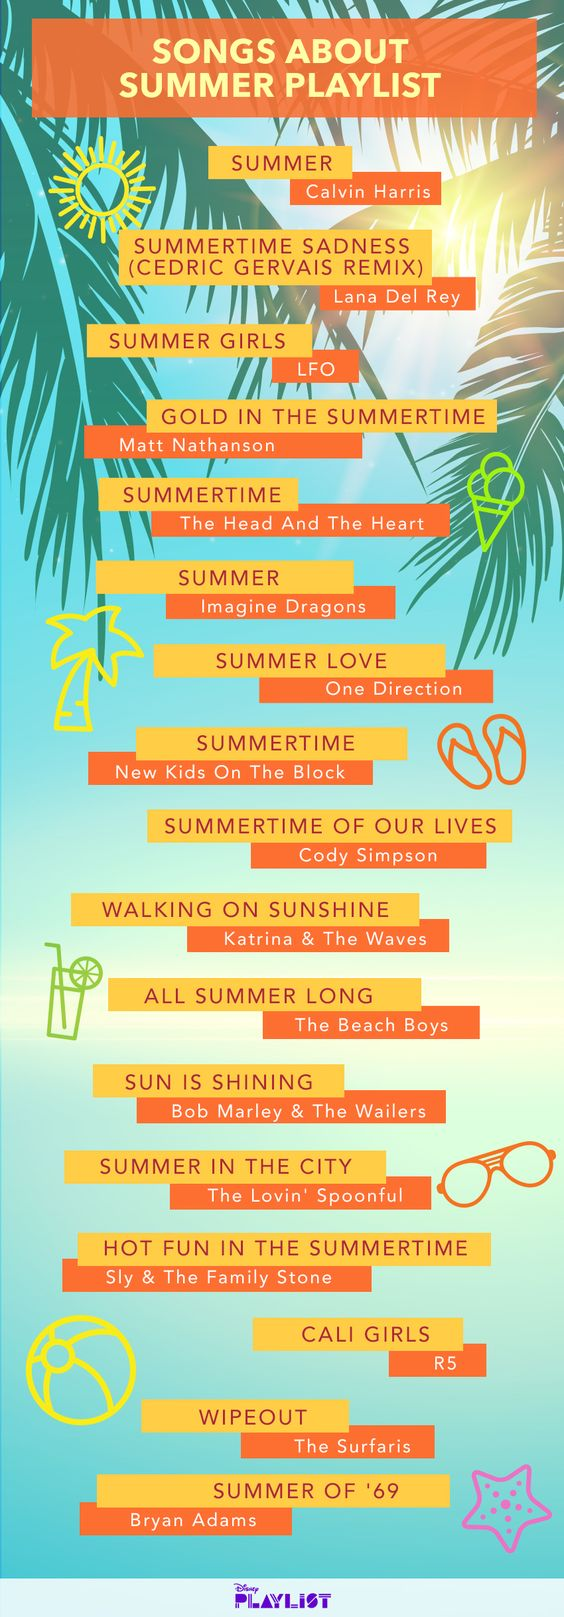 Relive Beach Days Gone By With Our Songs About Summer Playlist   Tracks   Disney Playlist